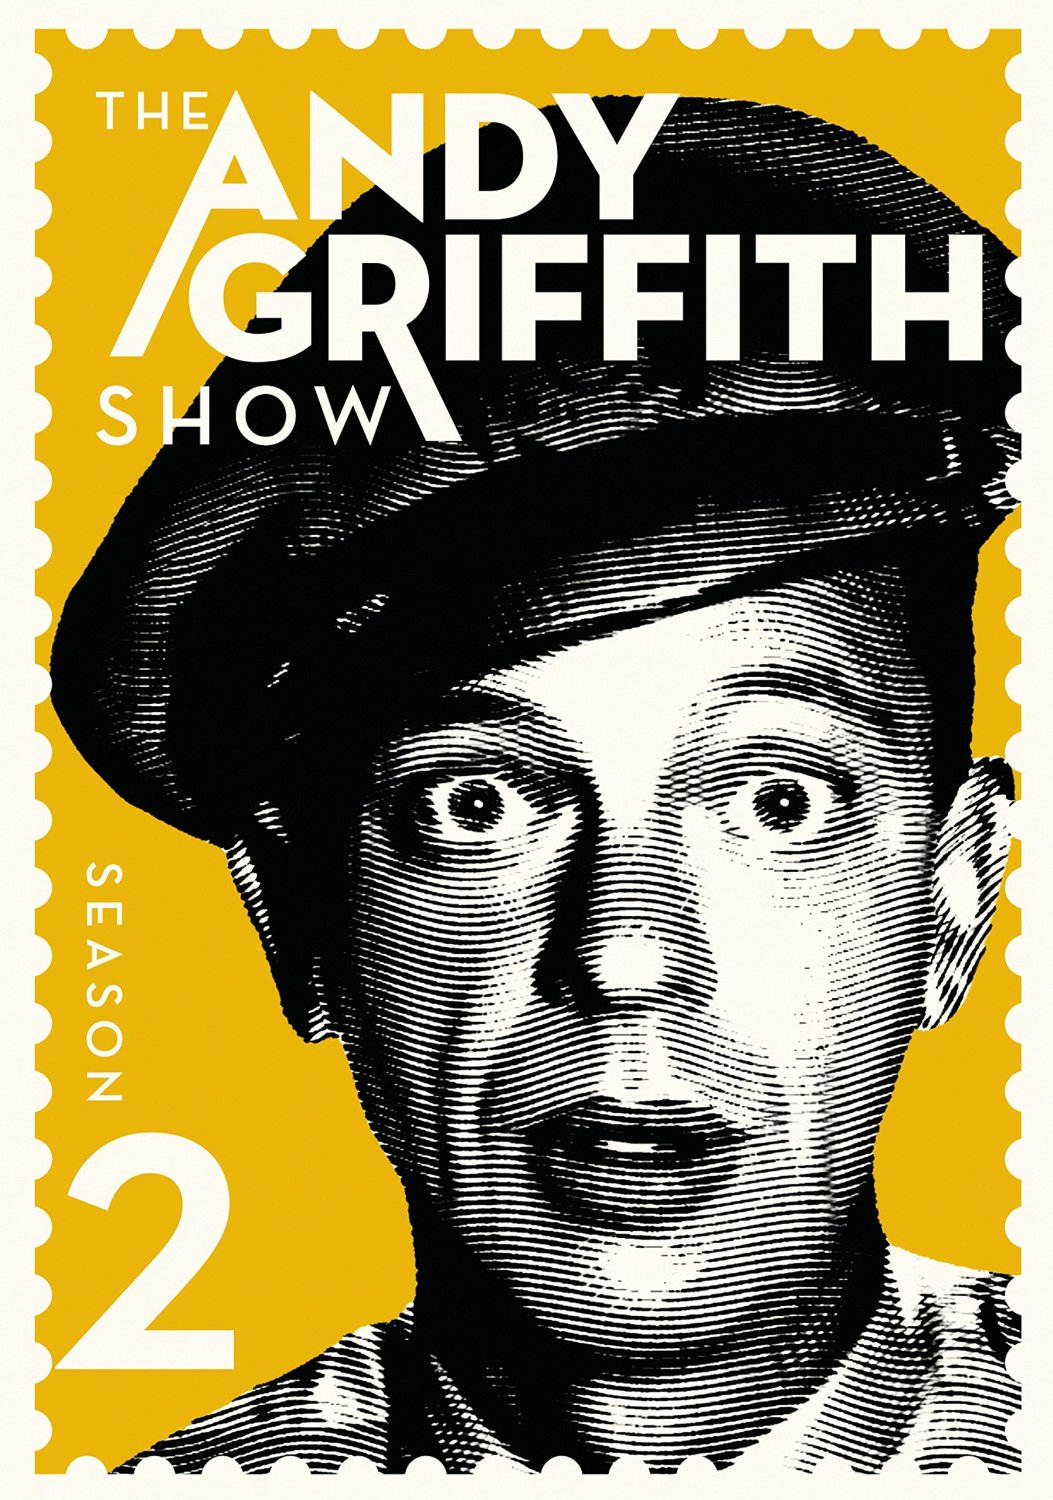 The Andy Griffith Show season 2 episode guide